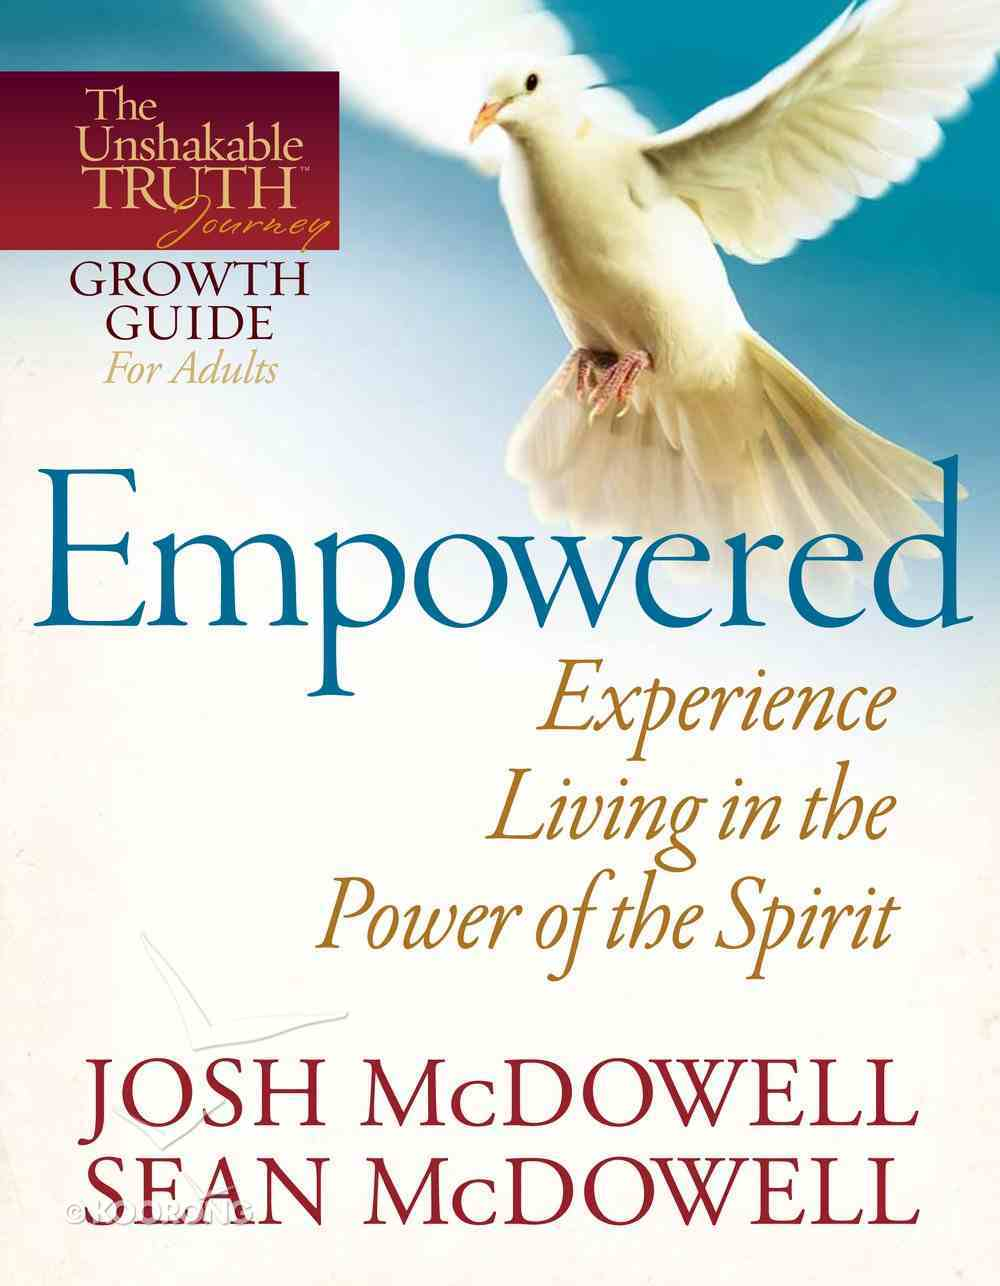 Unshakable Truth Journey: Empowered (Growth Guide) eBook